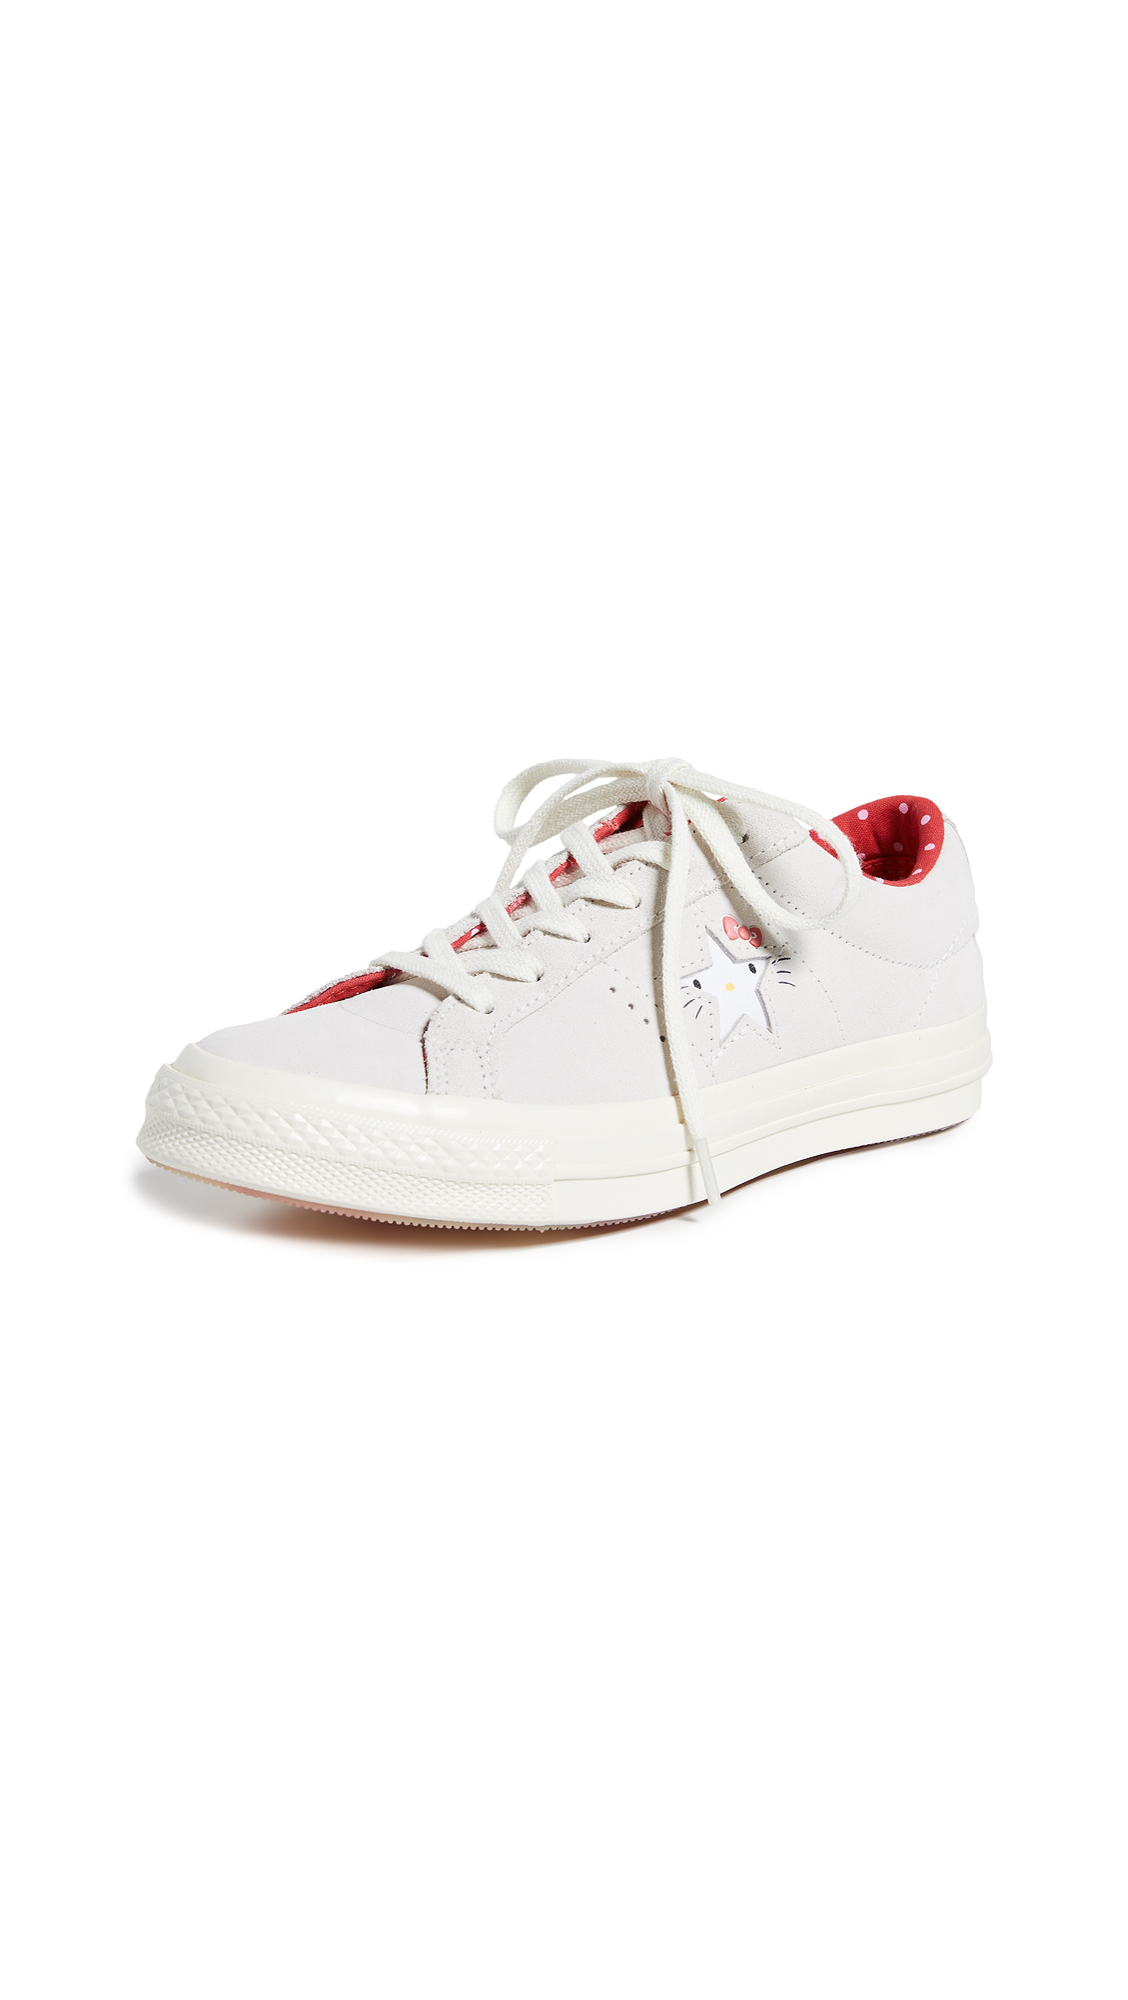 Converse Hello Kitty One Star Sneakers - Egret